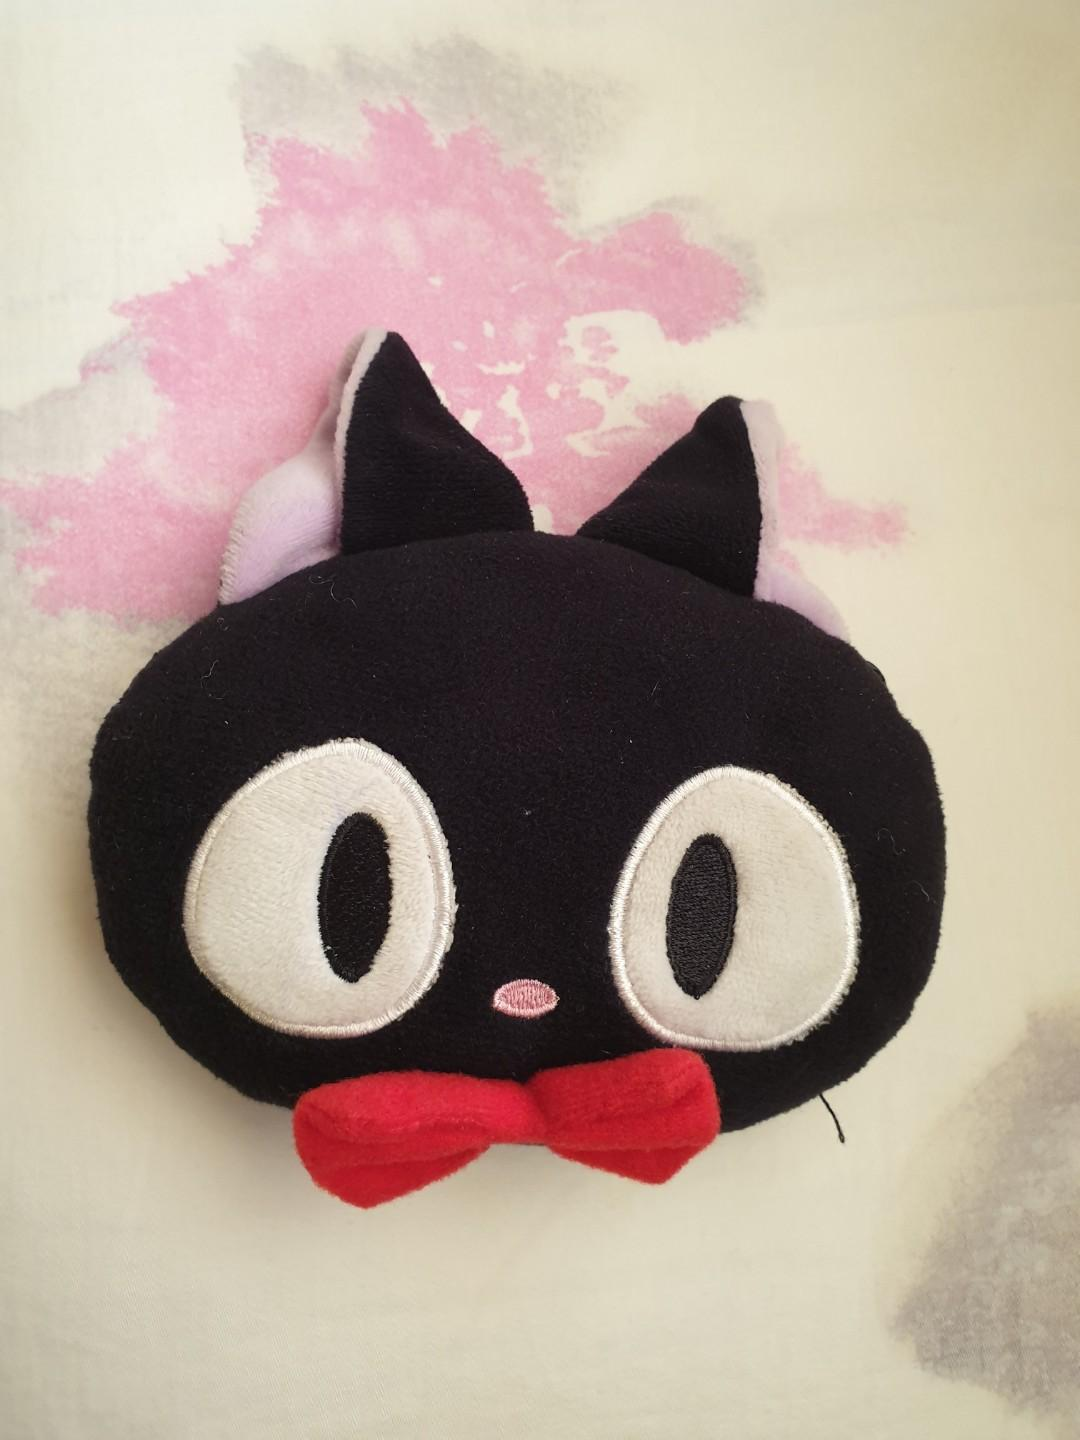 Jiji (Kiki's Delivery Service) Pouch + ID Card Holder